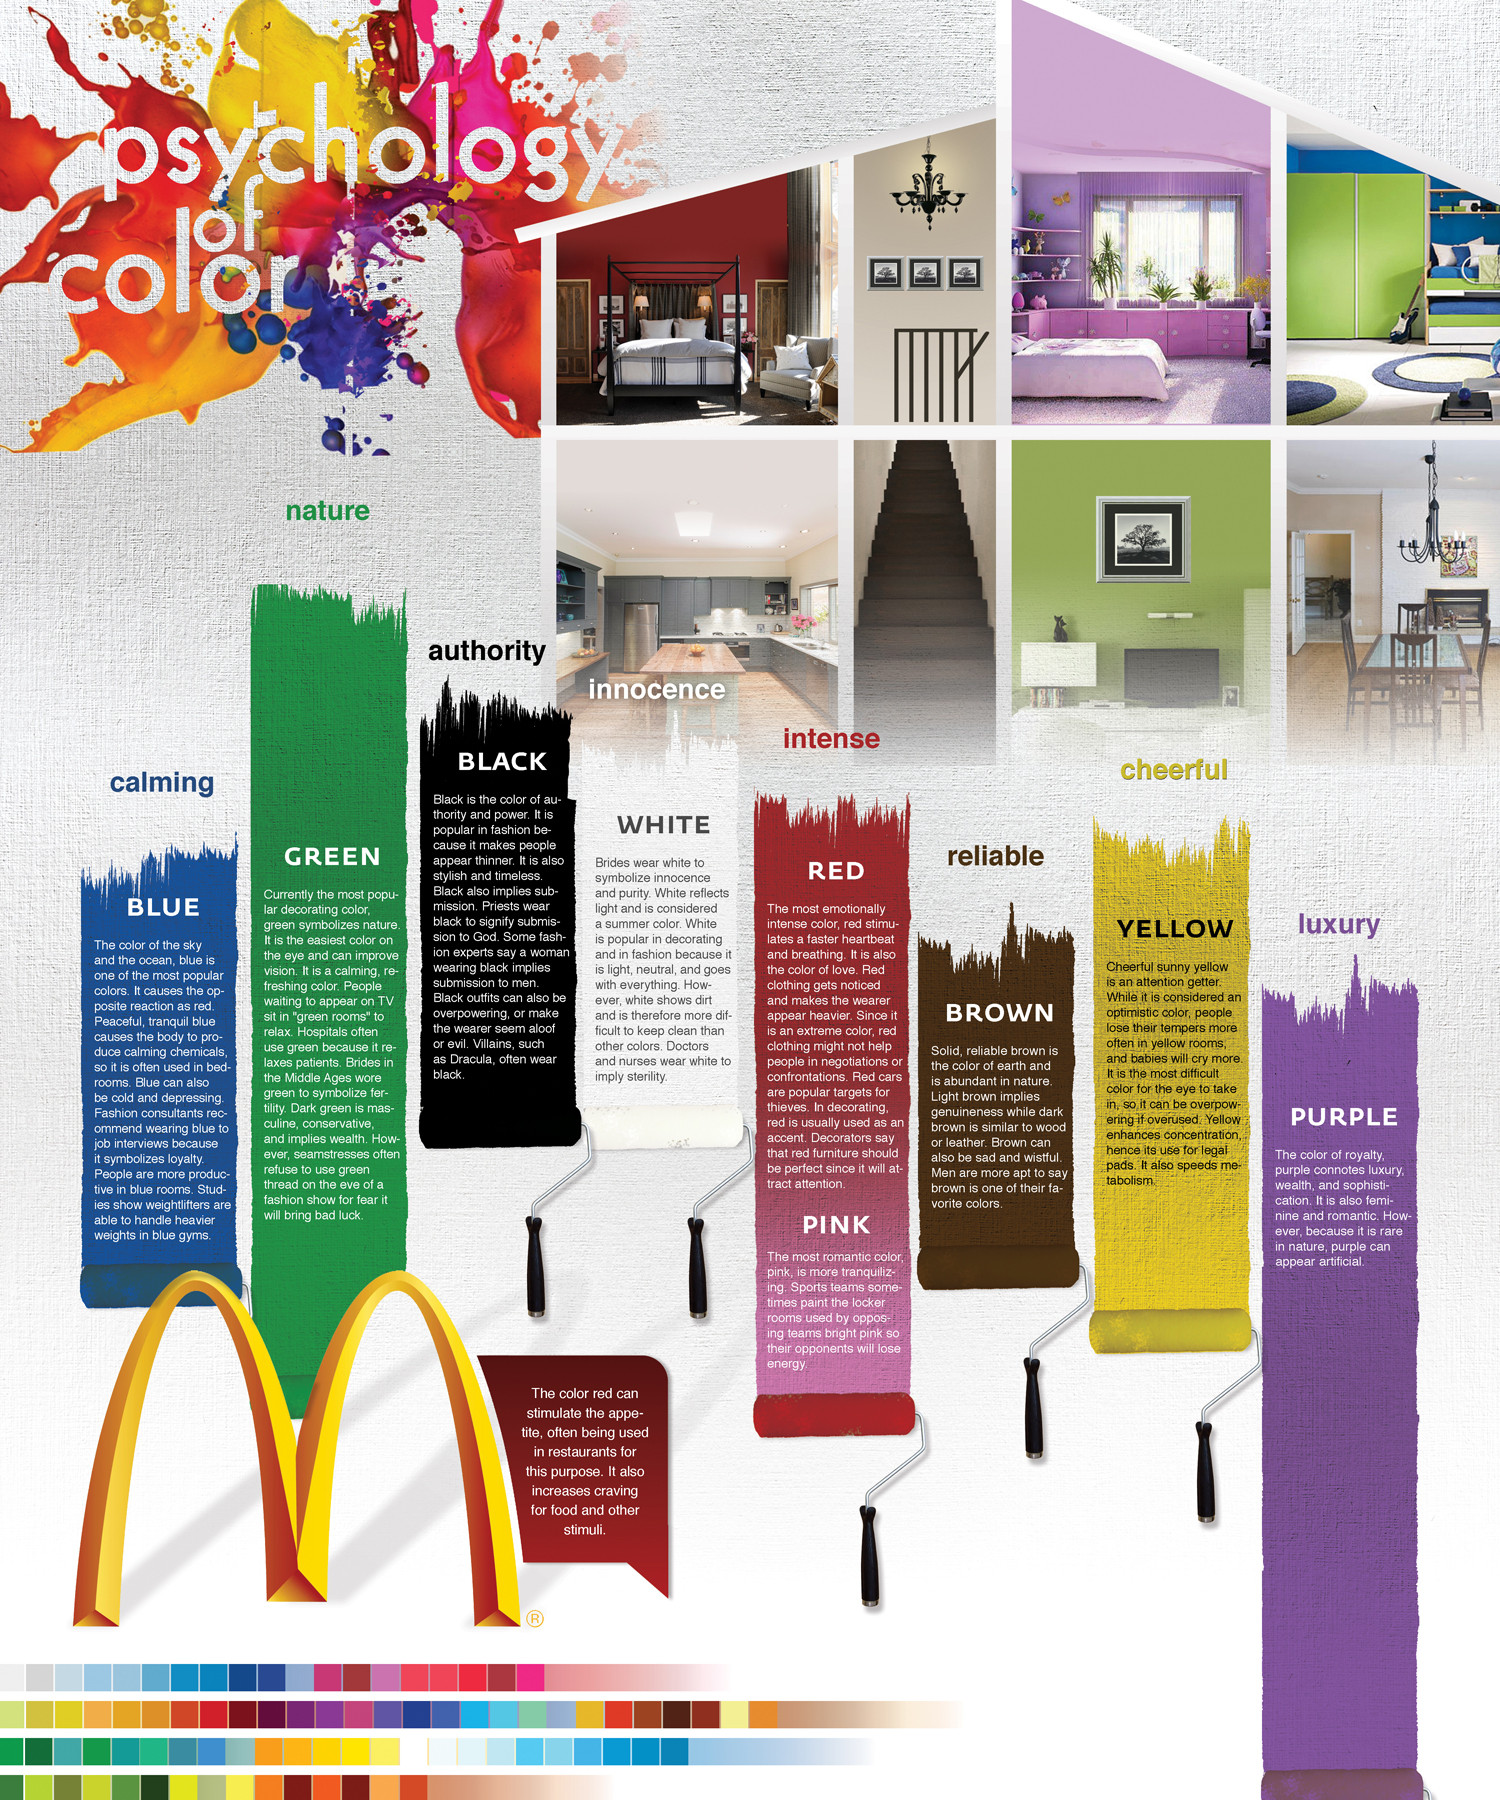 Colors web design psychology - Psychology Of Color Infographic